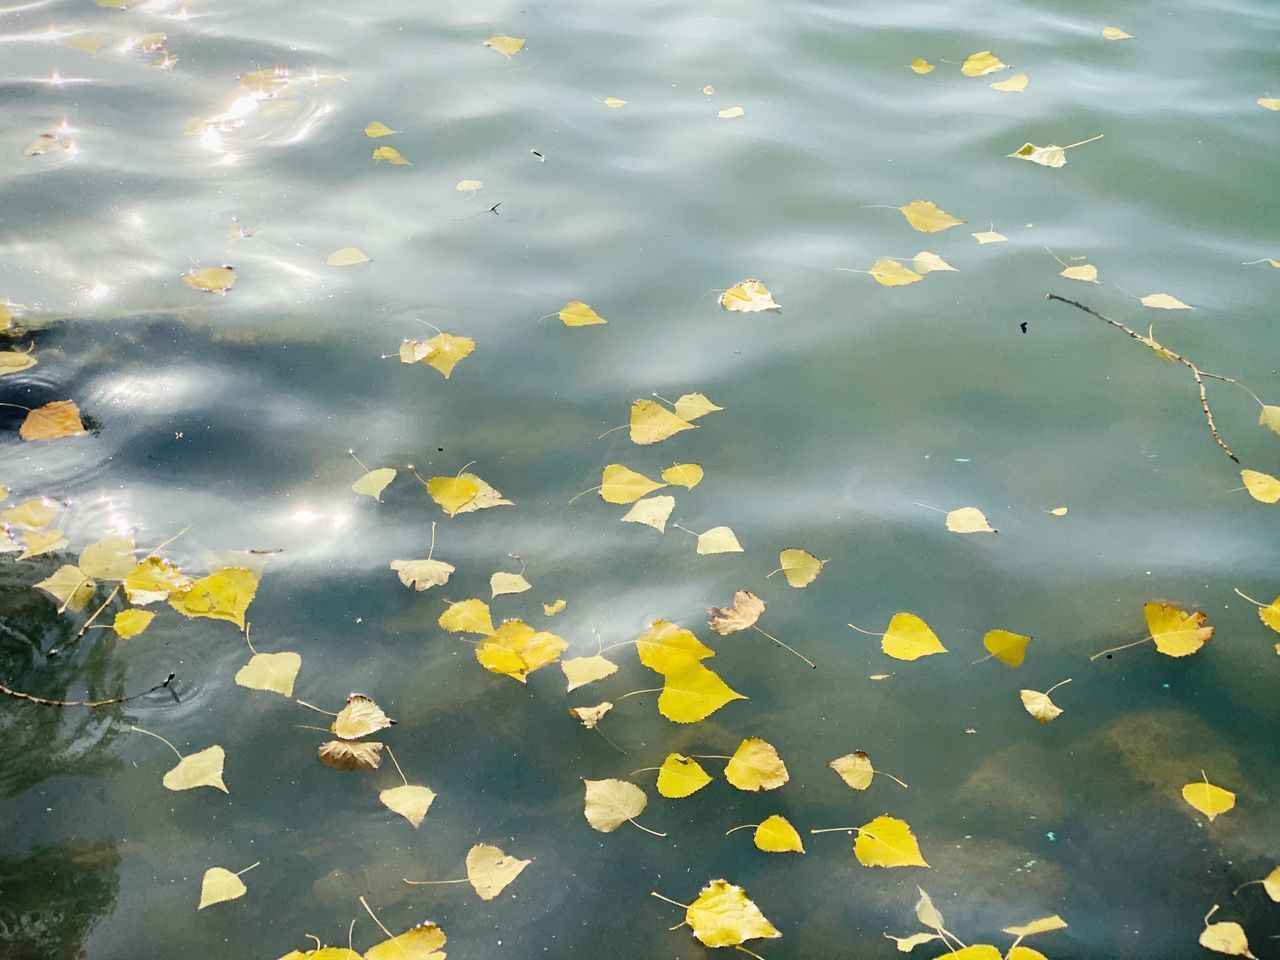 water, lake, high angle view, plant part, leaf, reflection, nature, floating, no people, floating on water, day, waterfront, leaves, outdoors, beauty in nature, full frame, yellow, backgrounds, change, rain